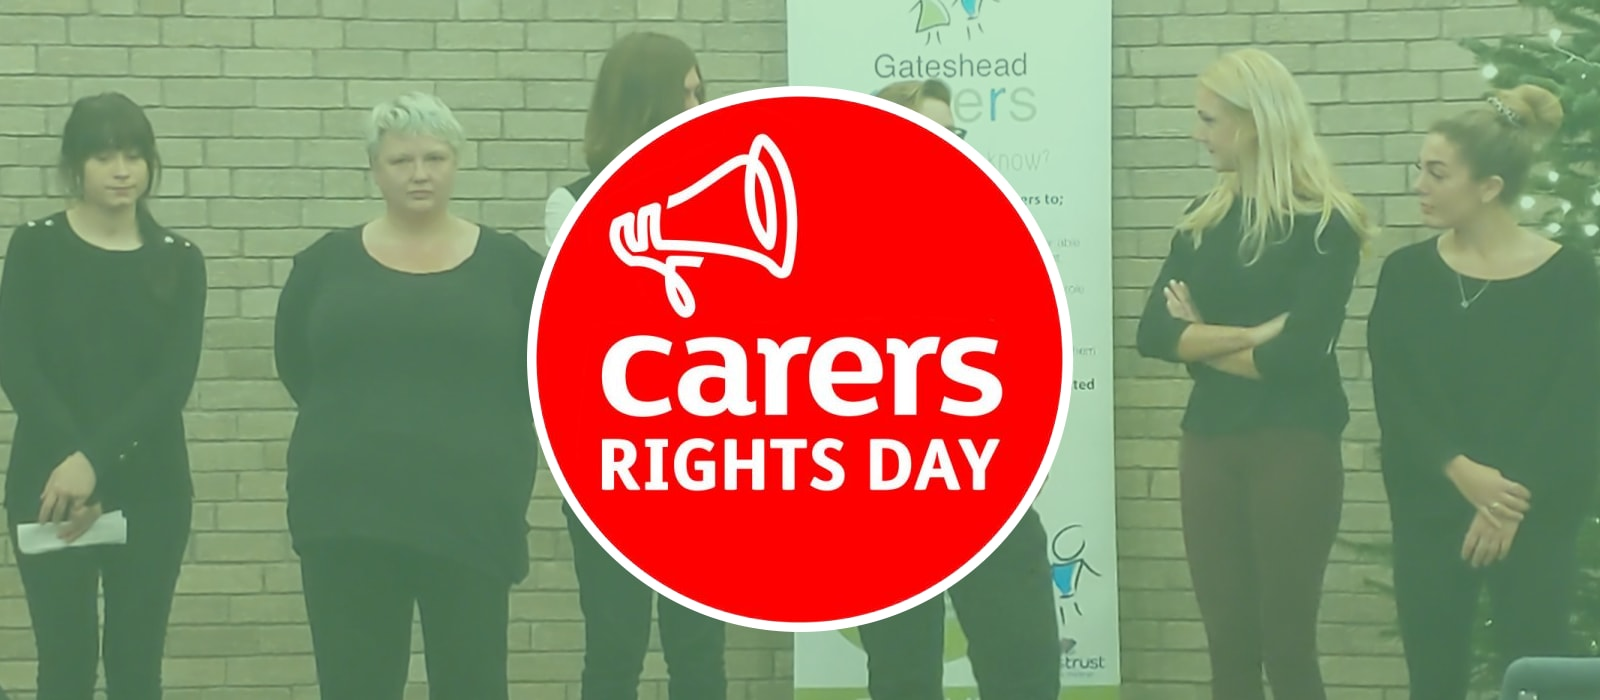 Your rights as a carer